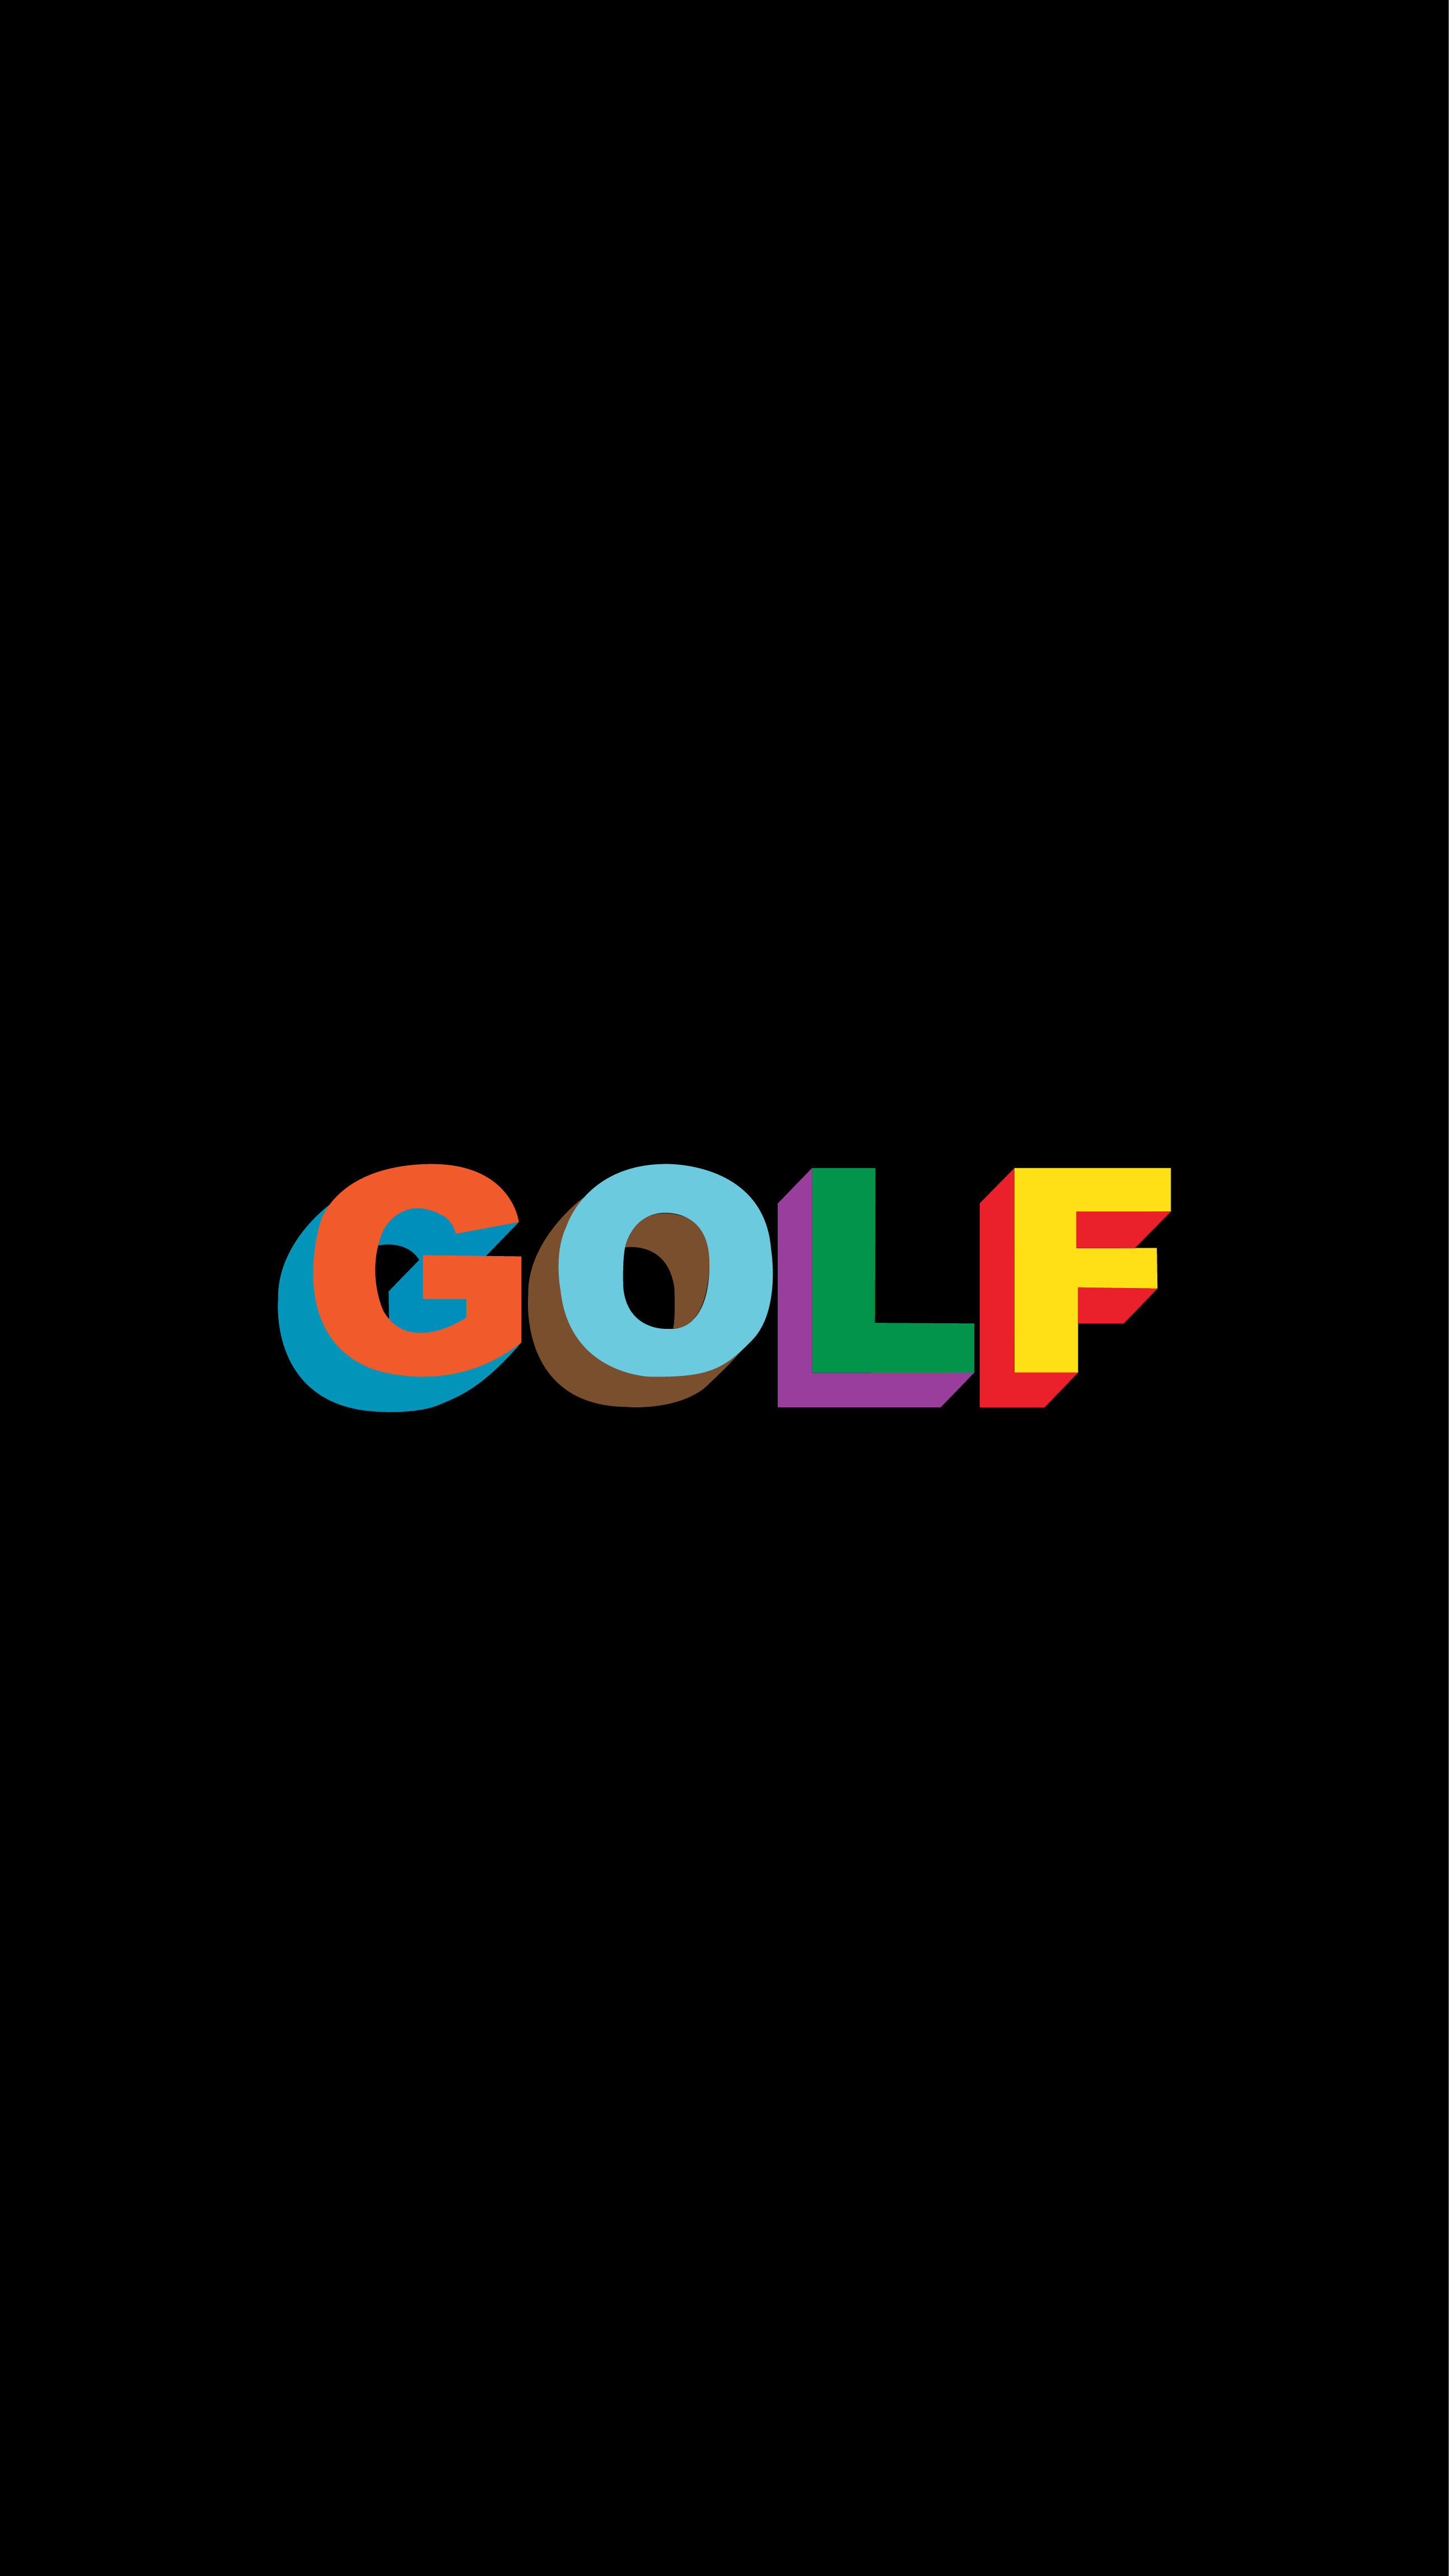 Golf Wang Desktop Background Posted By Zoey Sellers